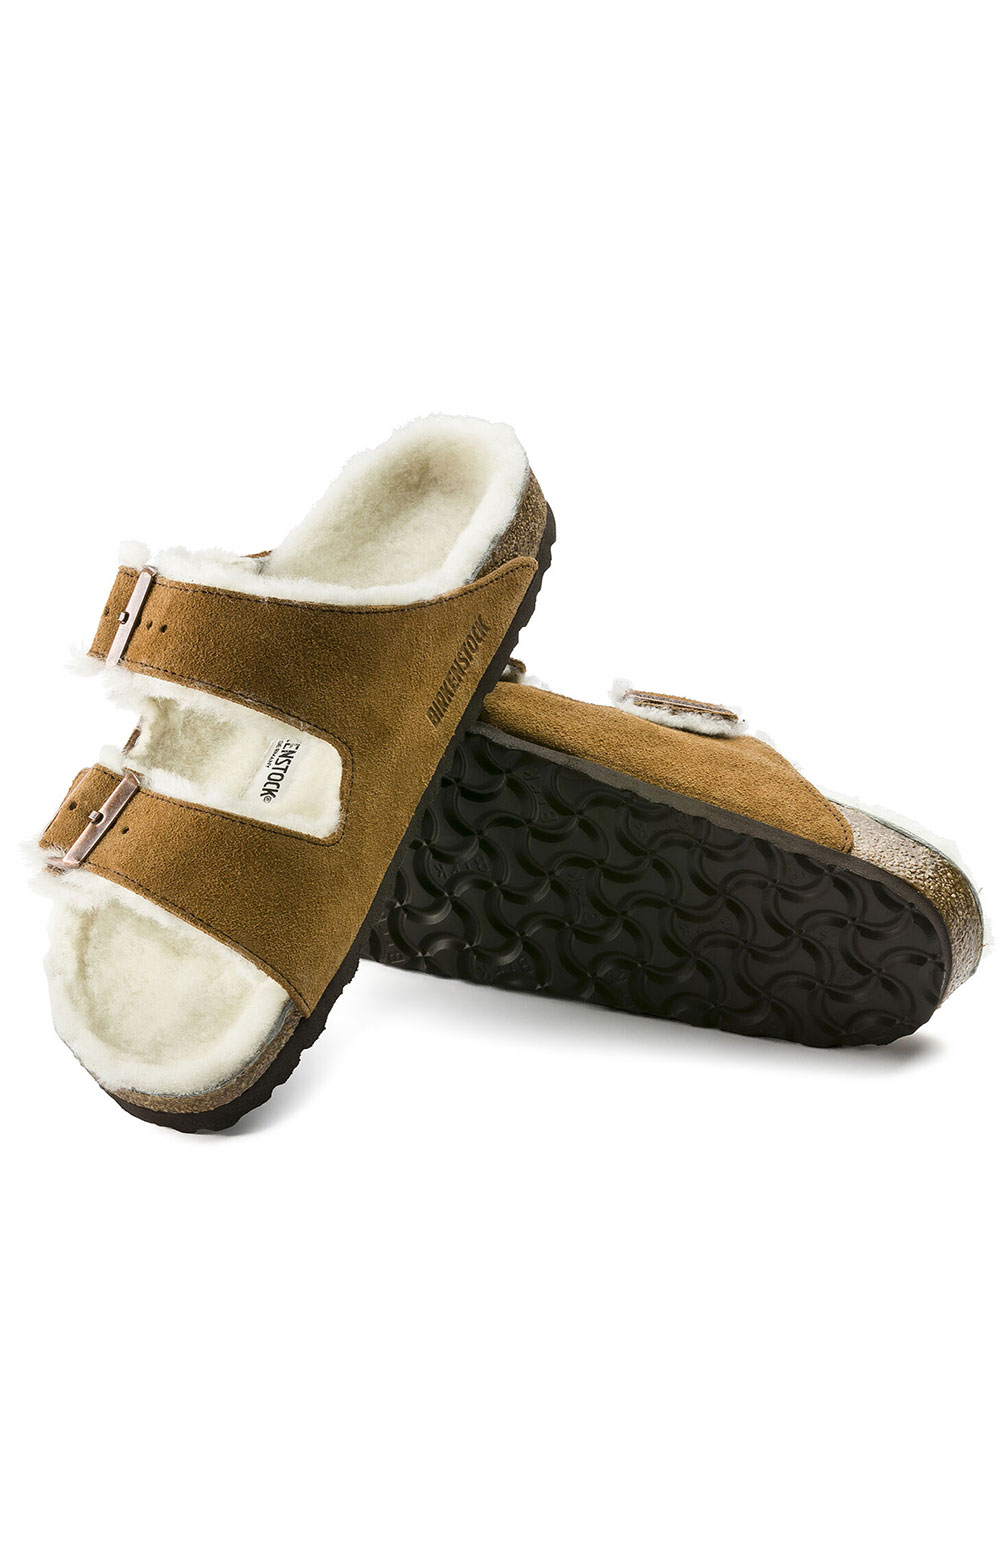 (1001128) Arizona Shearling Sandals - Mink 5